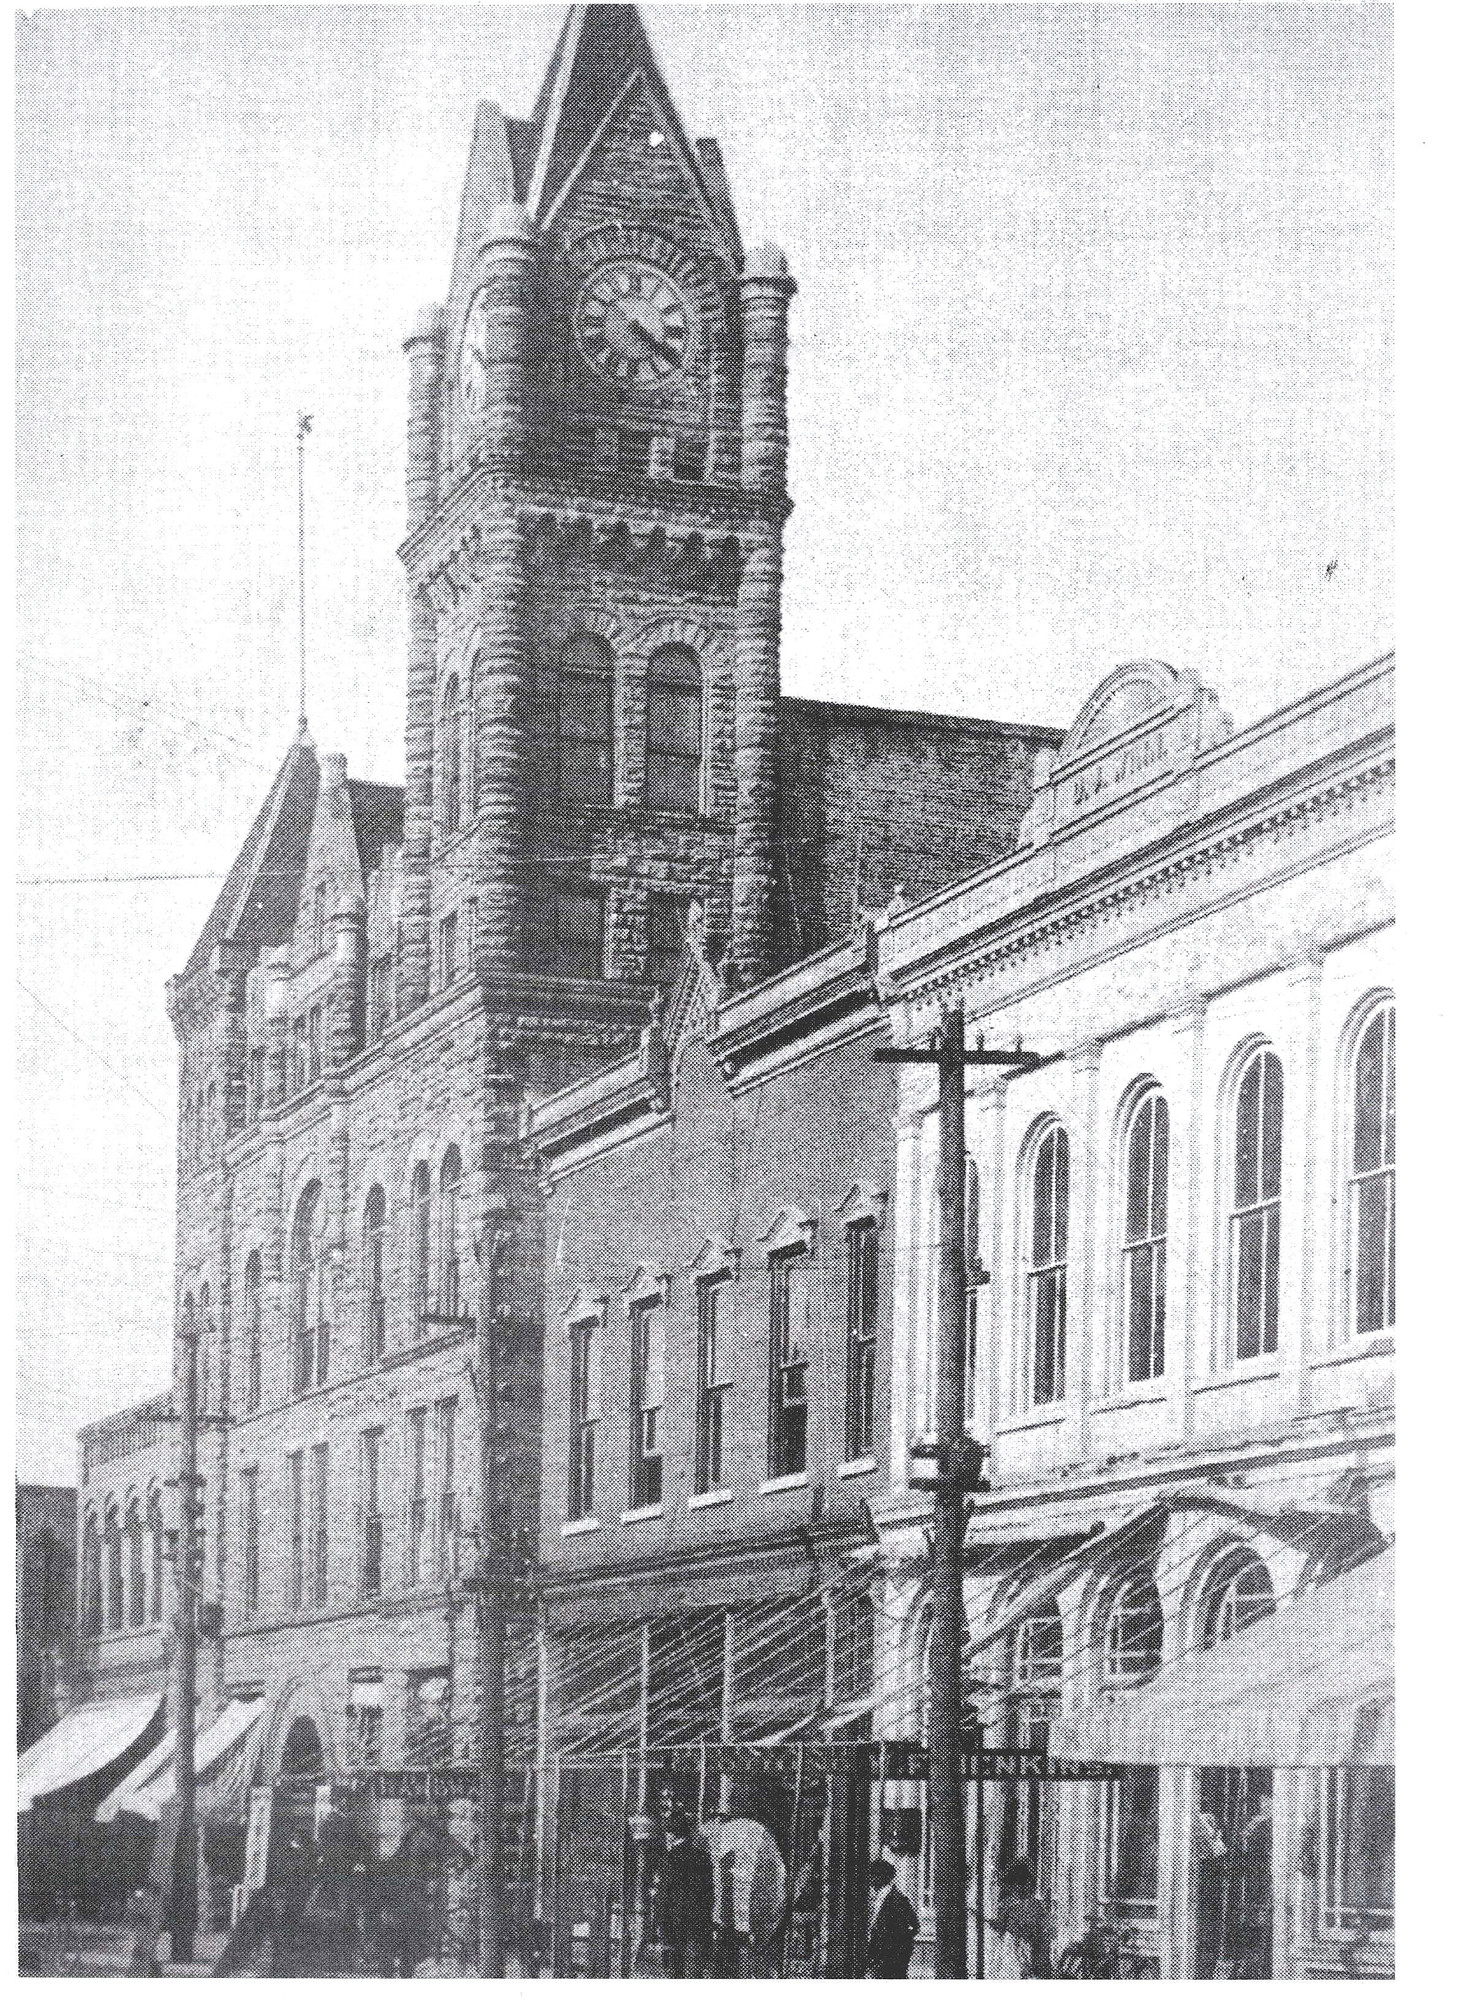 Several well-known theater groups performed on the second floor of Sumter's landmark, The Opera House, during this era.